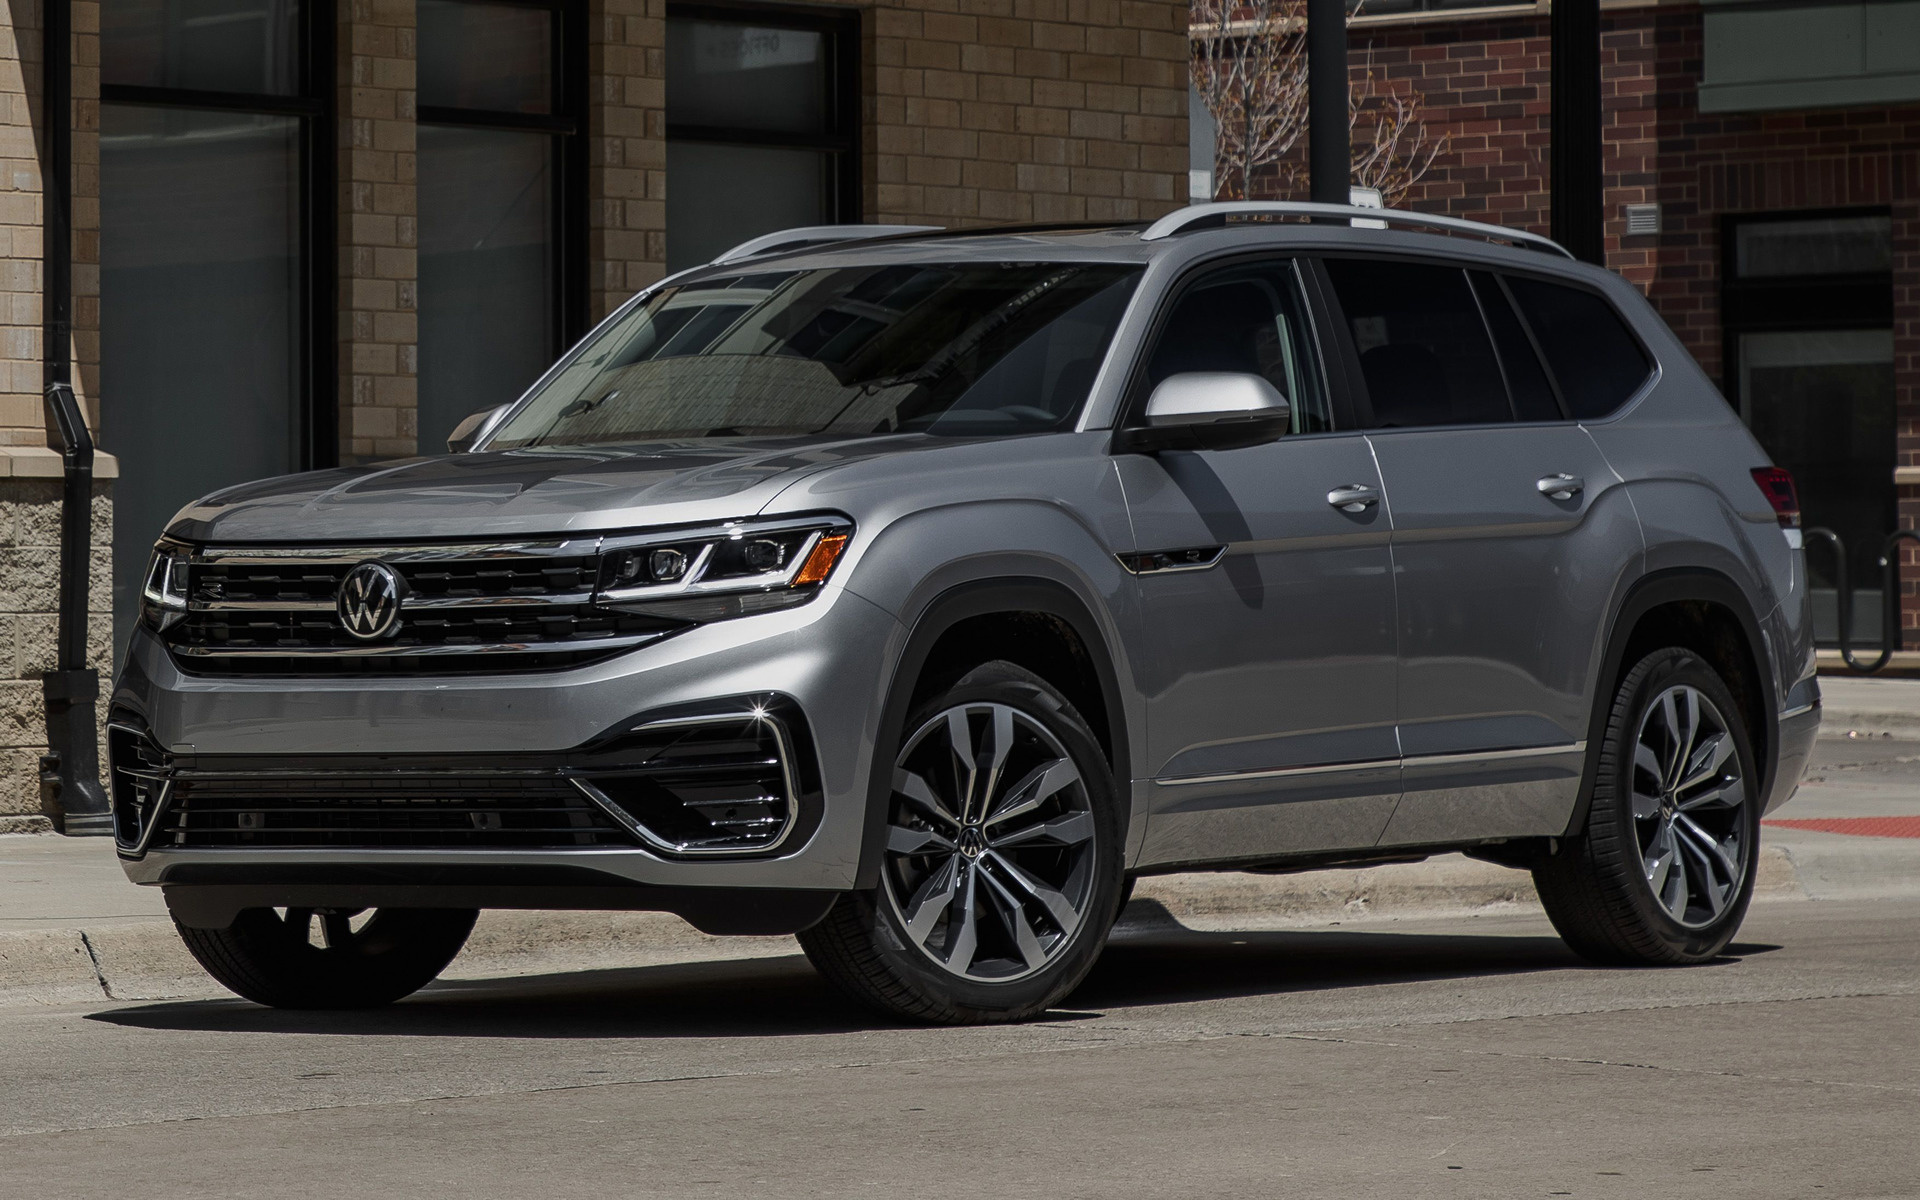 Cross Chrysler Jeep >> 2021 Volkswagen Atlas R-Line - Wallpapers and HD Images ...